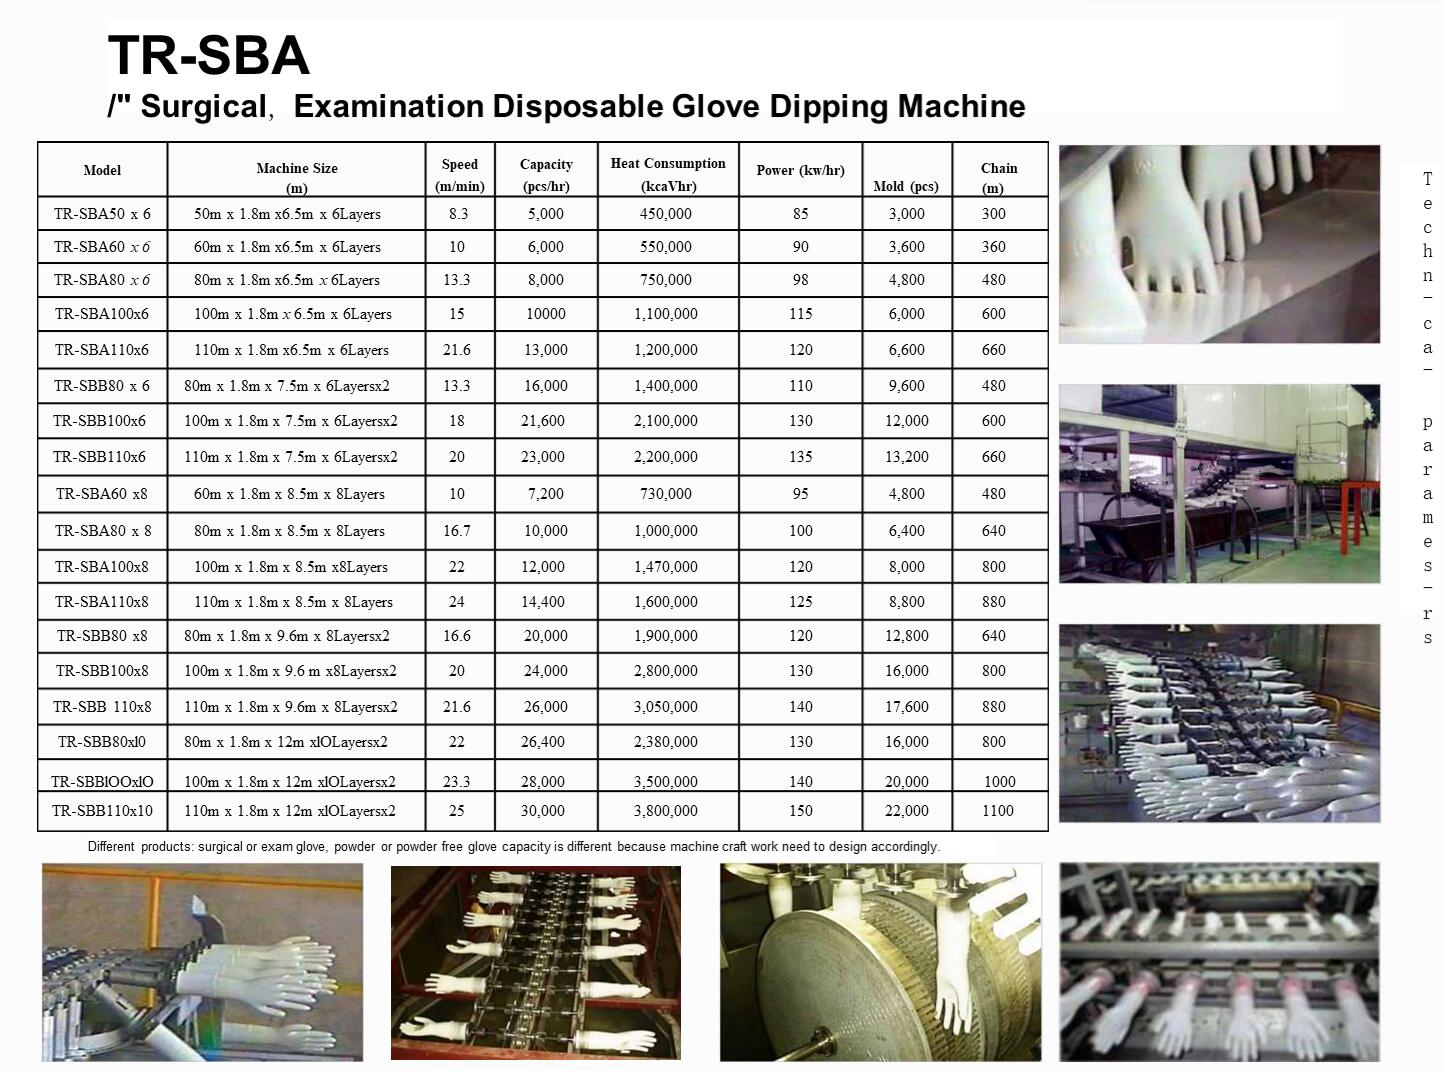 Disposable glove dipping machine